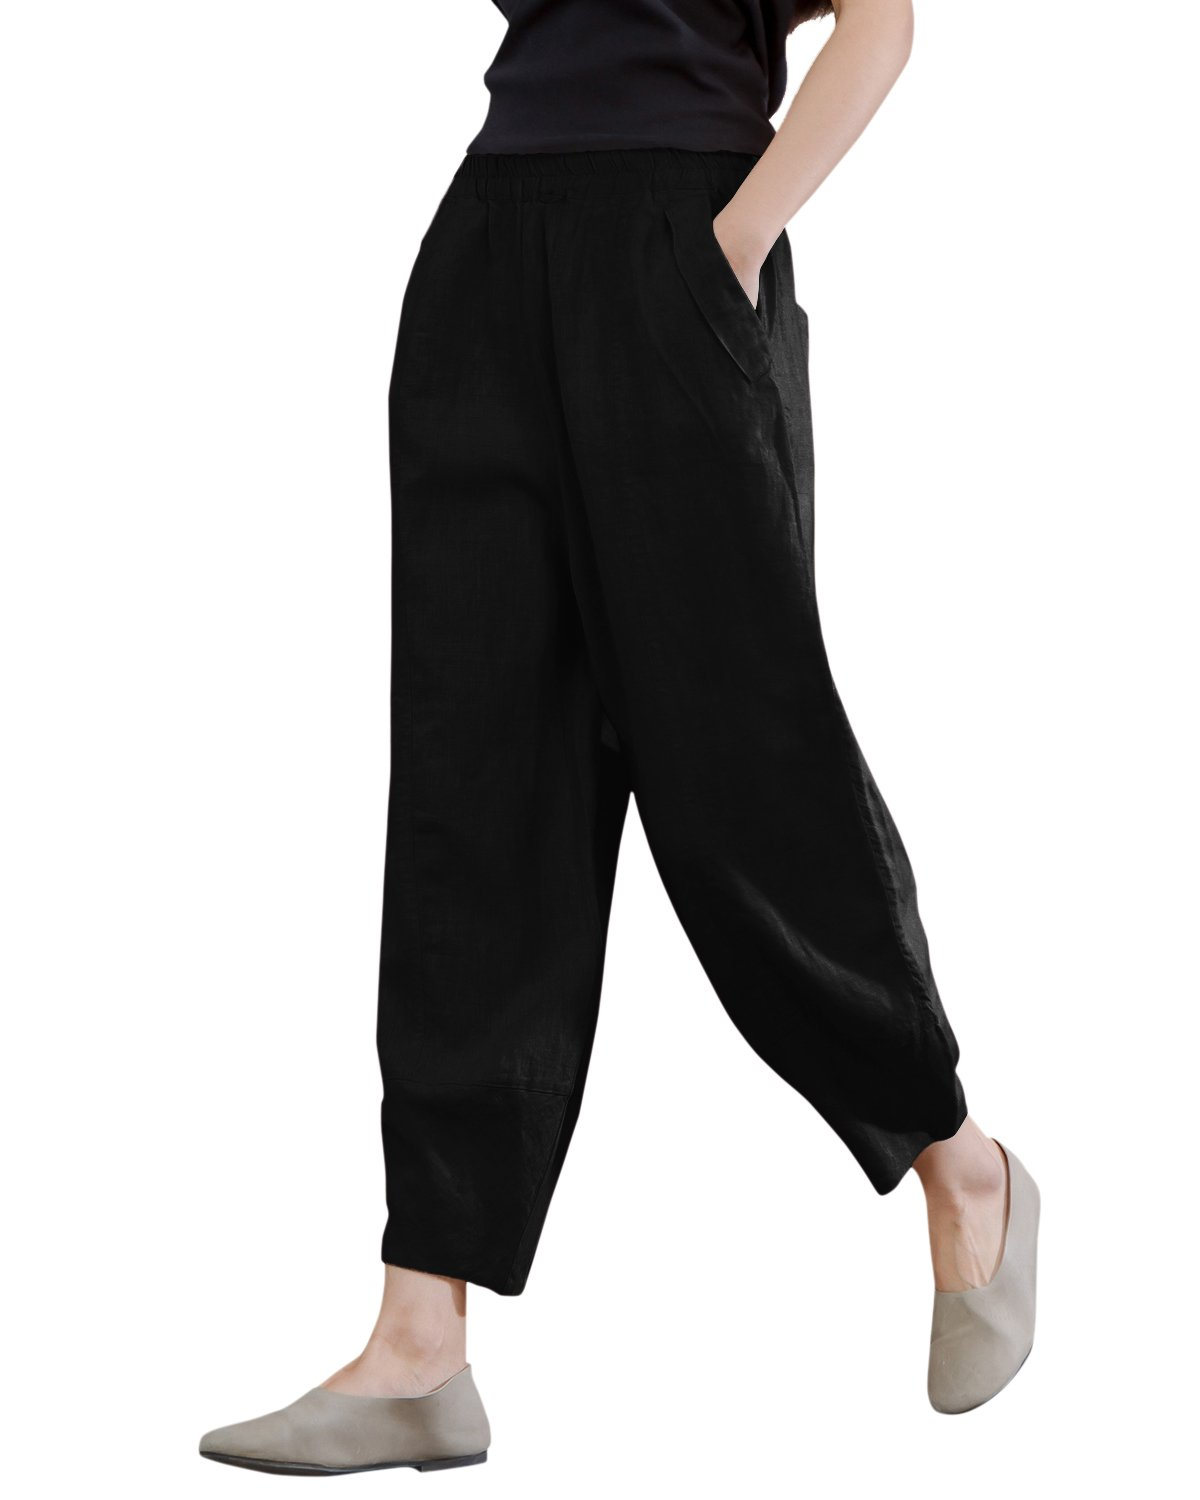 IXIMO Women's Linen Pants Lantern Tapered Elastic Waist Cropped Pants Trousers with Pockets Casual Capri Pants (Black, M)